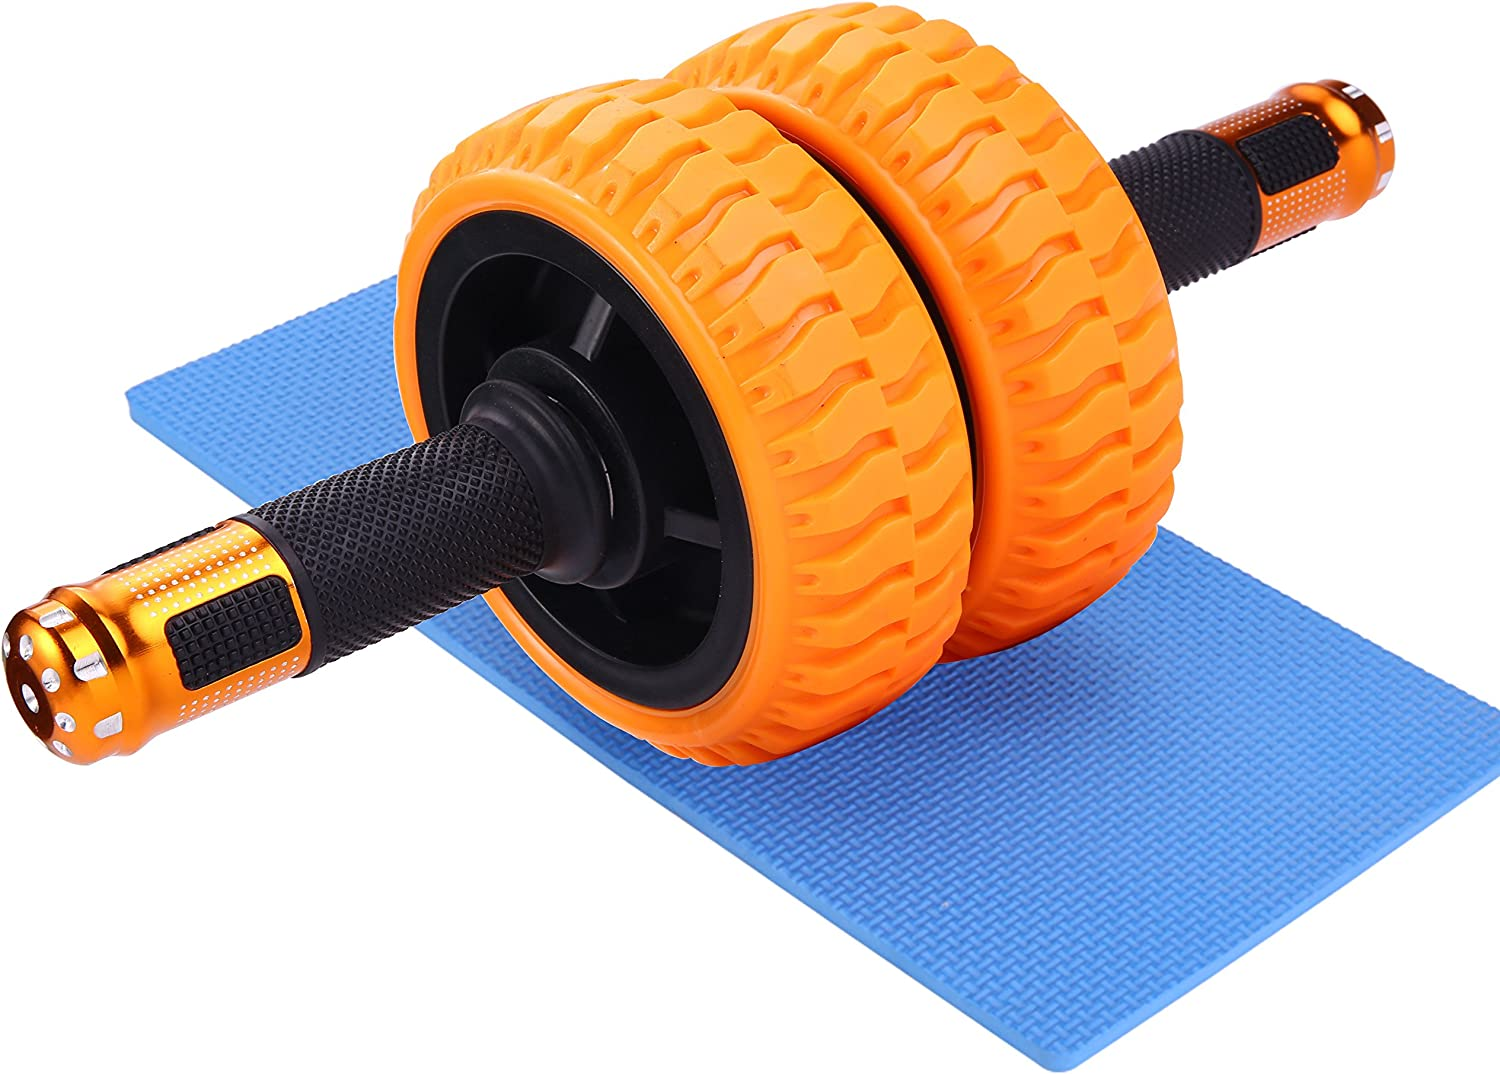 Wnnideo Ab Wheels Roller with Knee Pad - The Exercise Wheels with Stable Dual Wheels and Reinforced Steel Handles Great for Core Strength Training Abdominal Workout